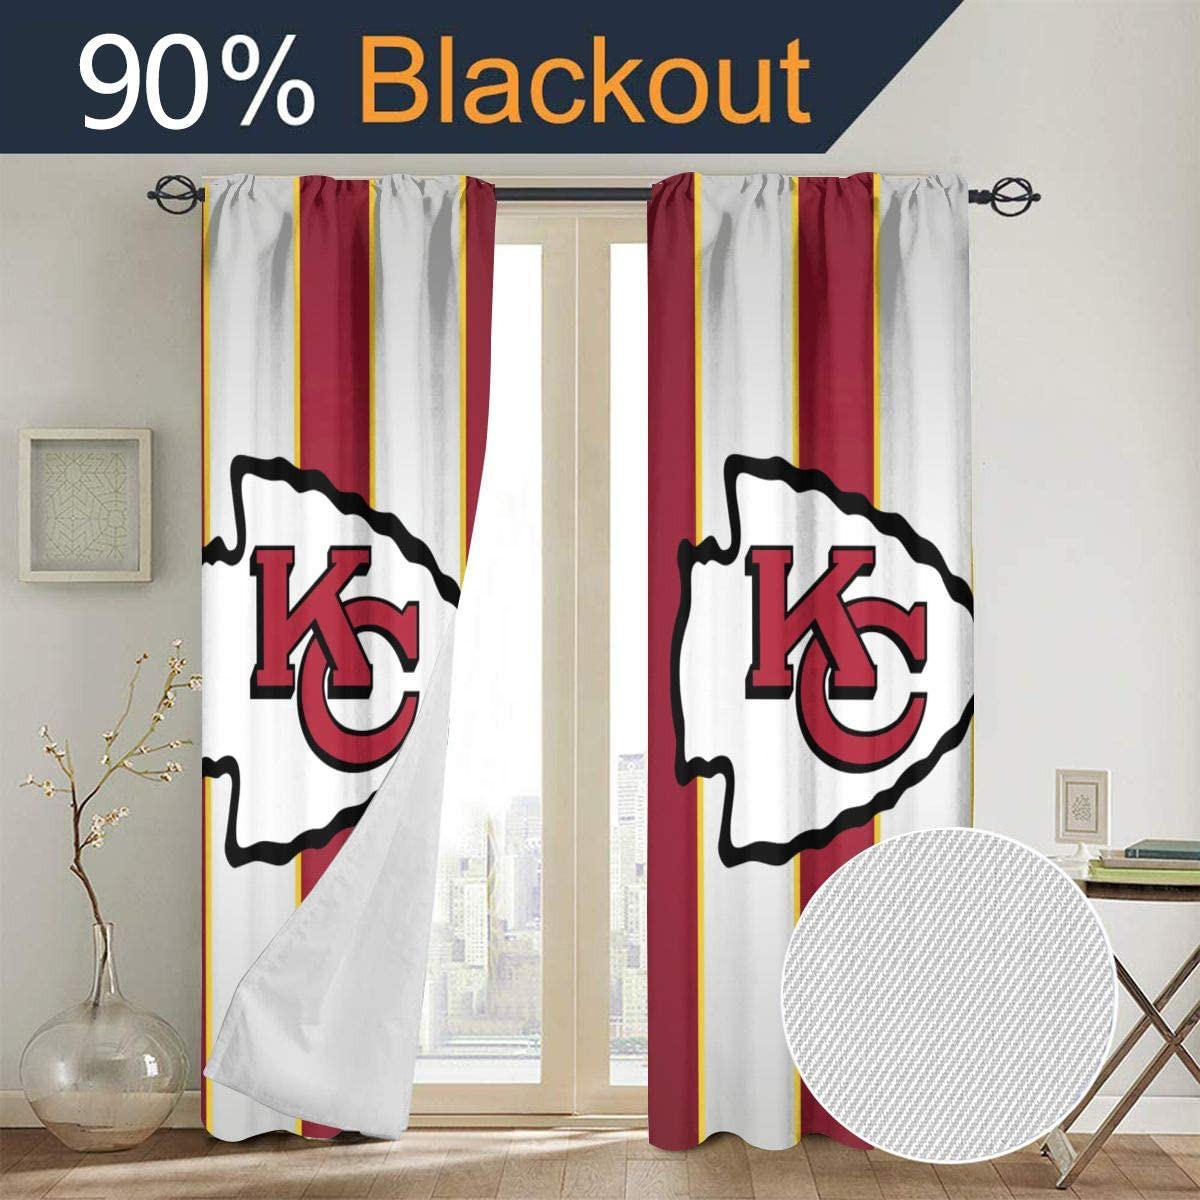 ALHOKLAus Kansas City Chiefs Stylish Bedroom Curtains, Blackout Curtains, All-Season Insulated Children's Room Blackout Curtains/Curtains (Wearing Rod Type) 52inch x 72inch